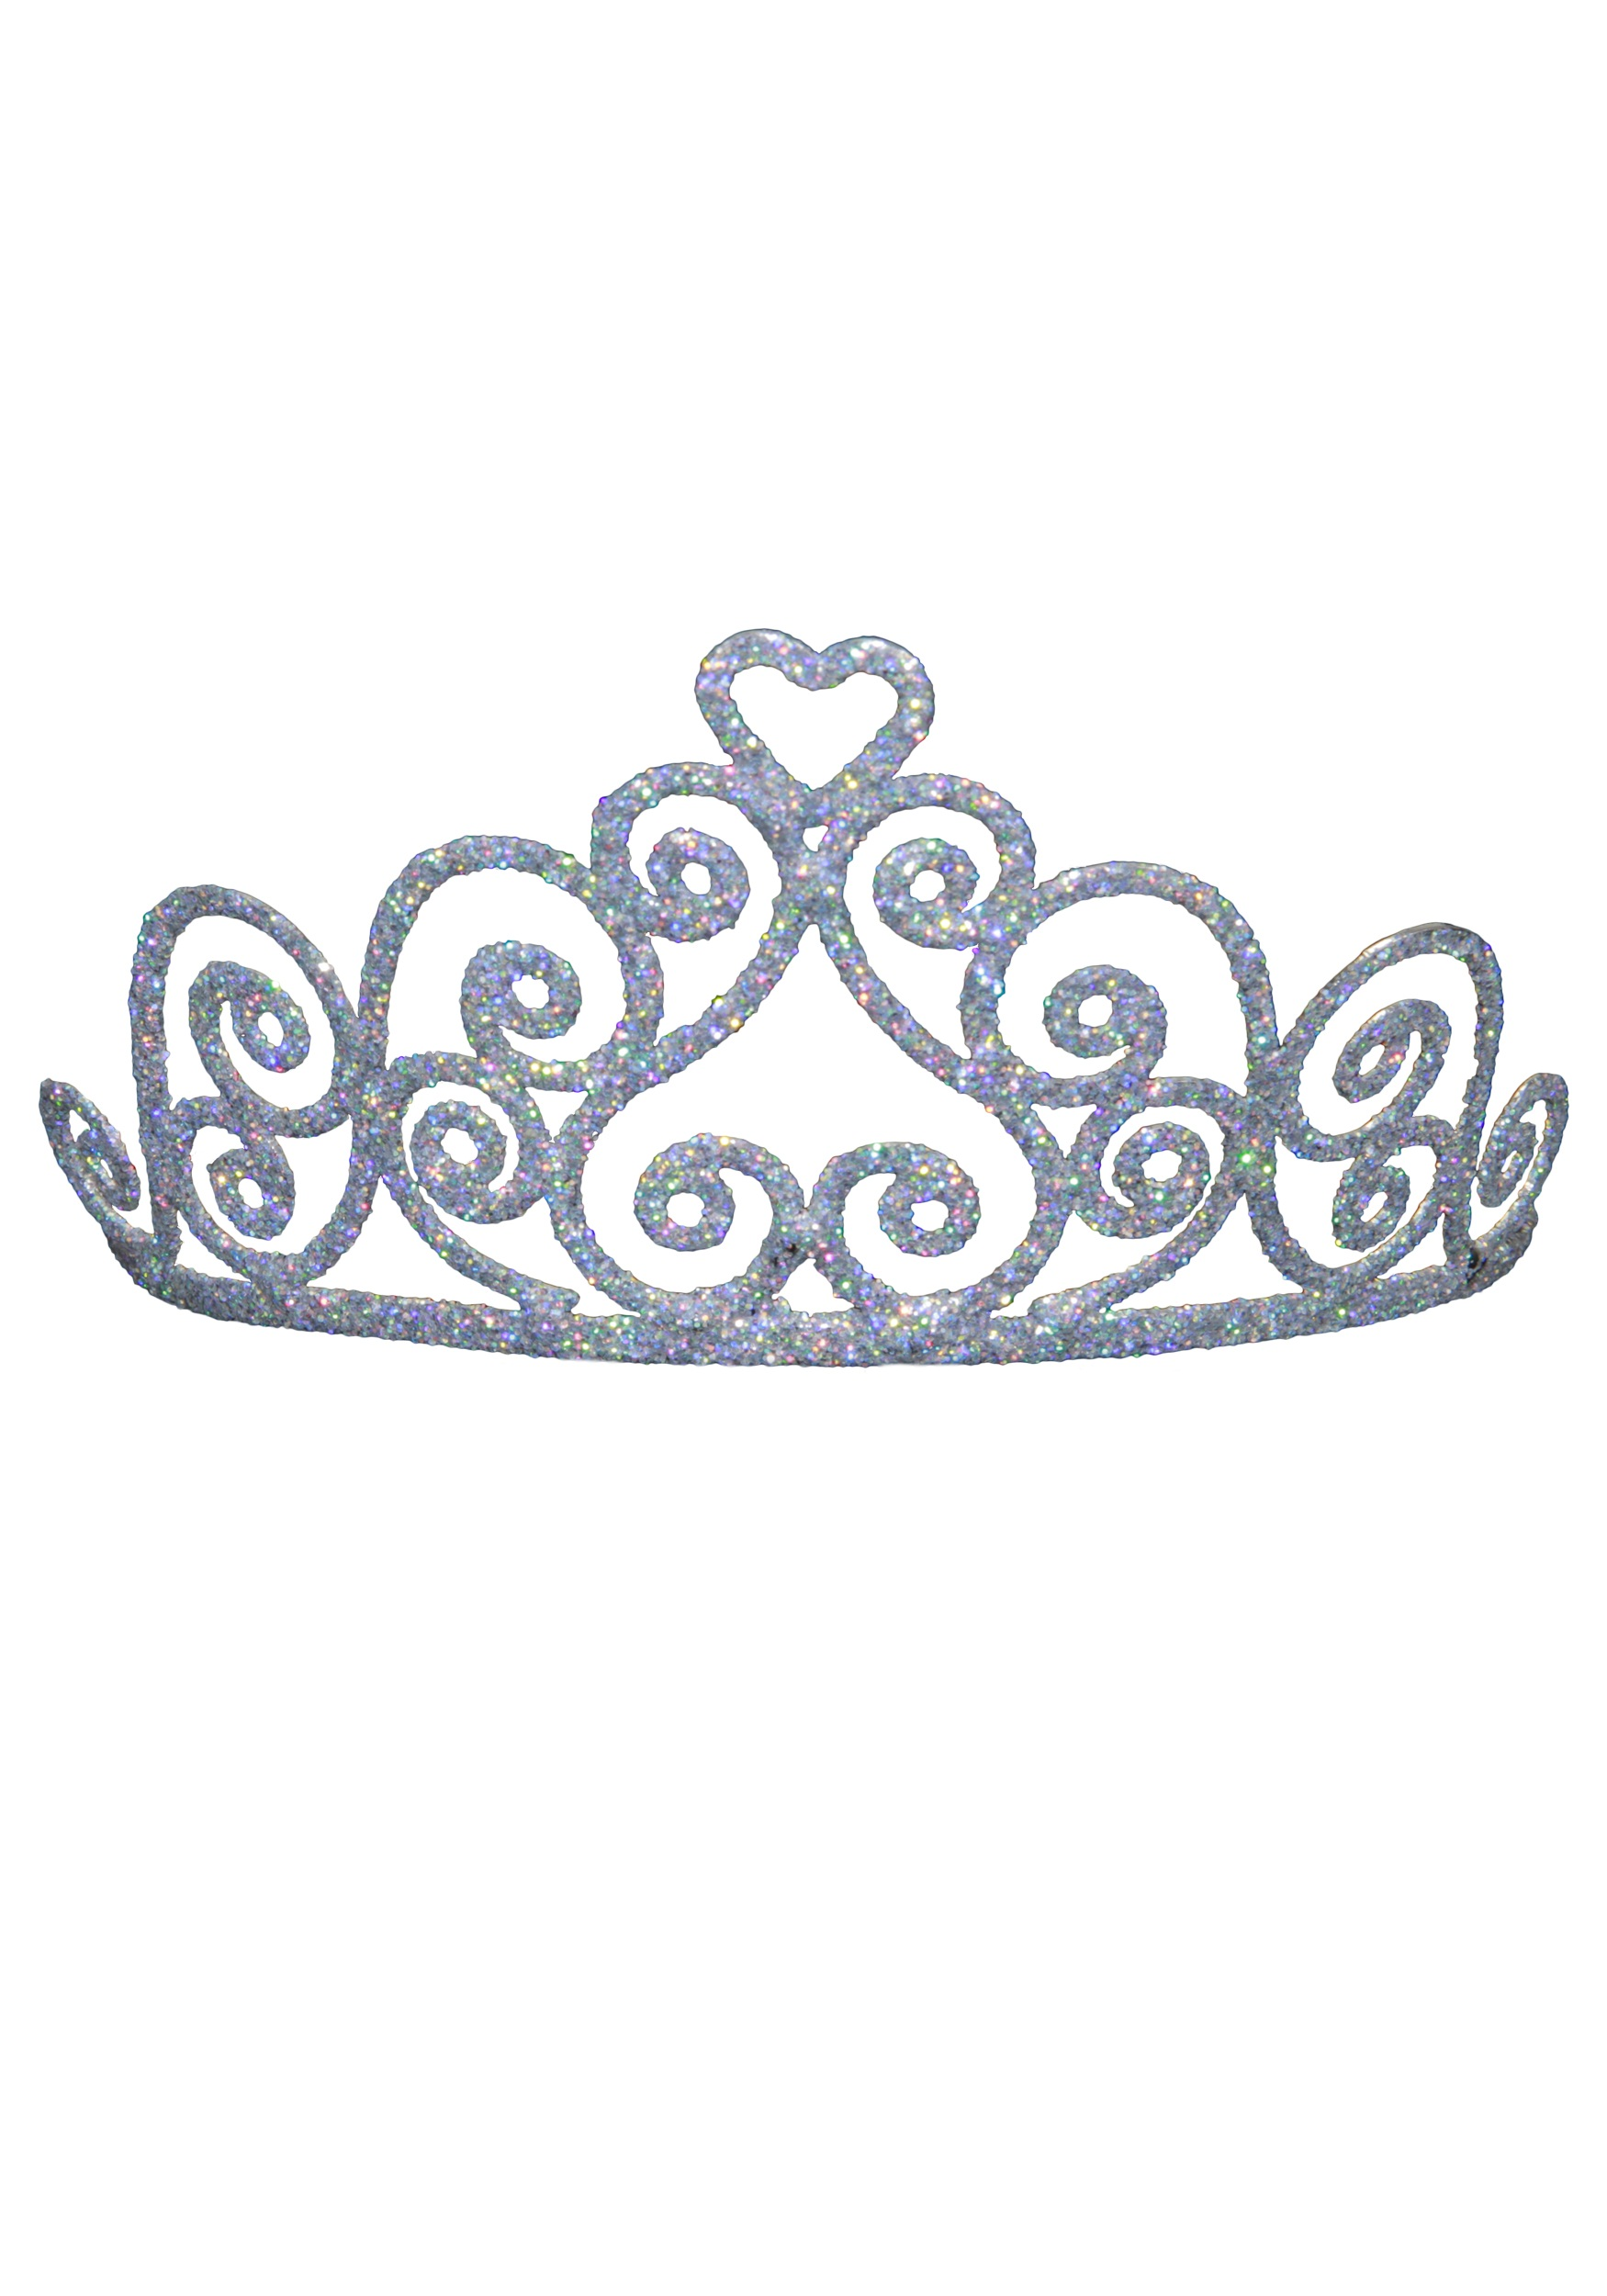 king and queen crowns together clipart #7